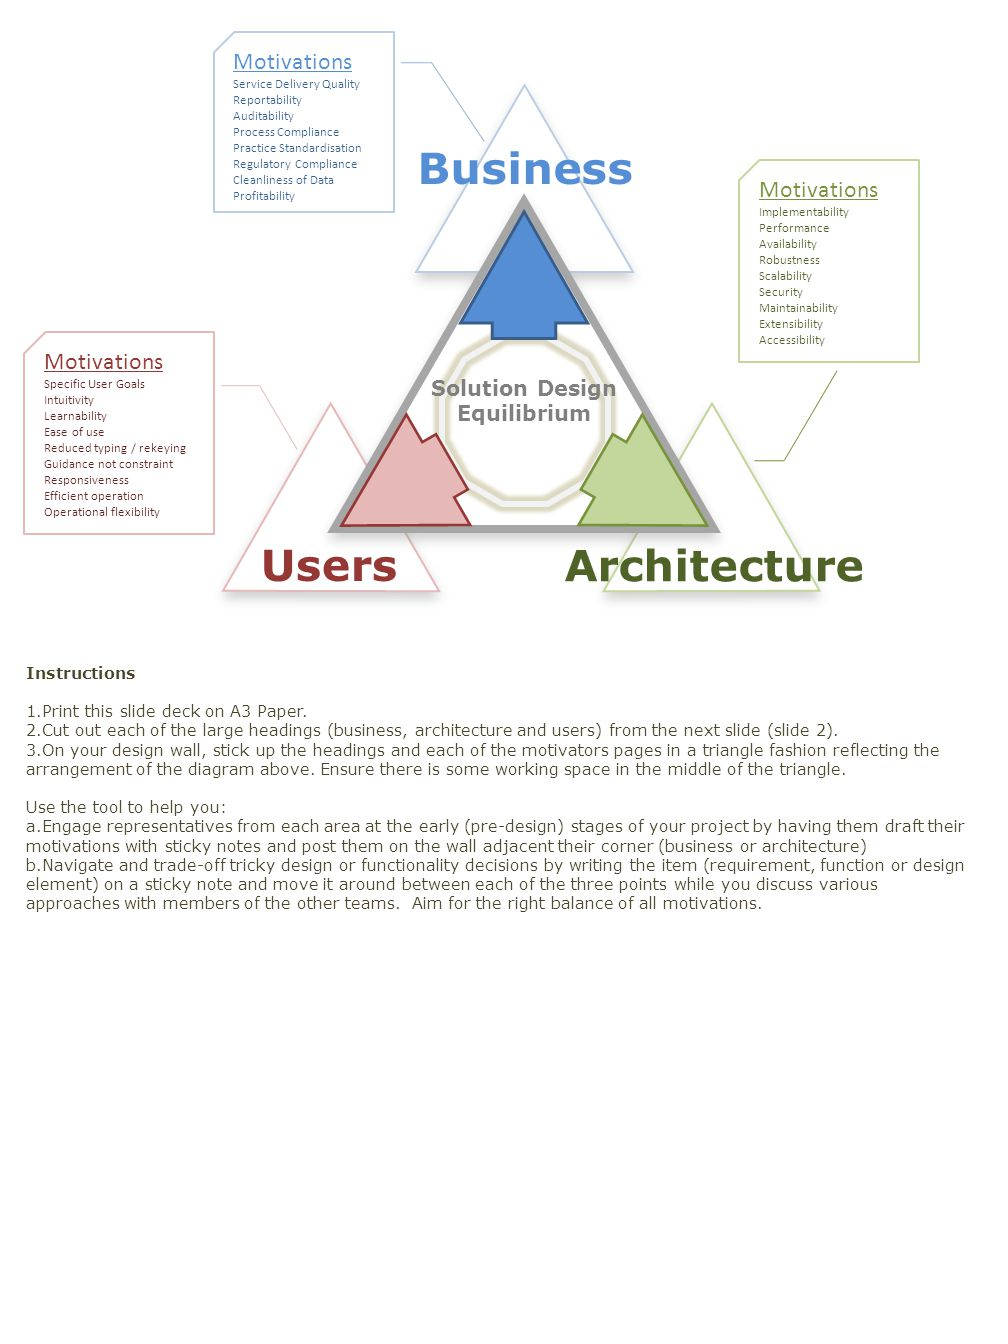 Business Users Architecture Motivations Service Delivery Quality Reportability Auditability Process Compliance Practice Standardisation Regulatory Compliance Cleanliness of Data Profitability Motivations Implementability Performance Availability Robustness Scalability Security Maintainability Extensibility Accessibility Motivations Specific User Goals Intuitivity Learnability Ease of use Reduced typing / rekeying Guidance not constraint Responsiveness Efficient operation Operational flexibility Solution Design Equilibrium Instructions 1.Print this slide deck on A3 Paper.